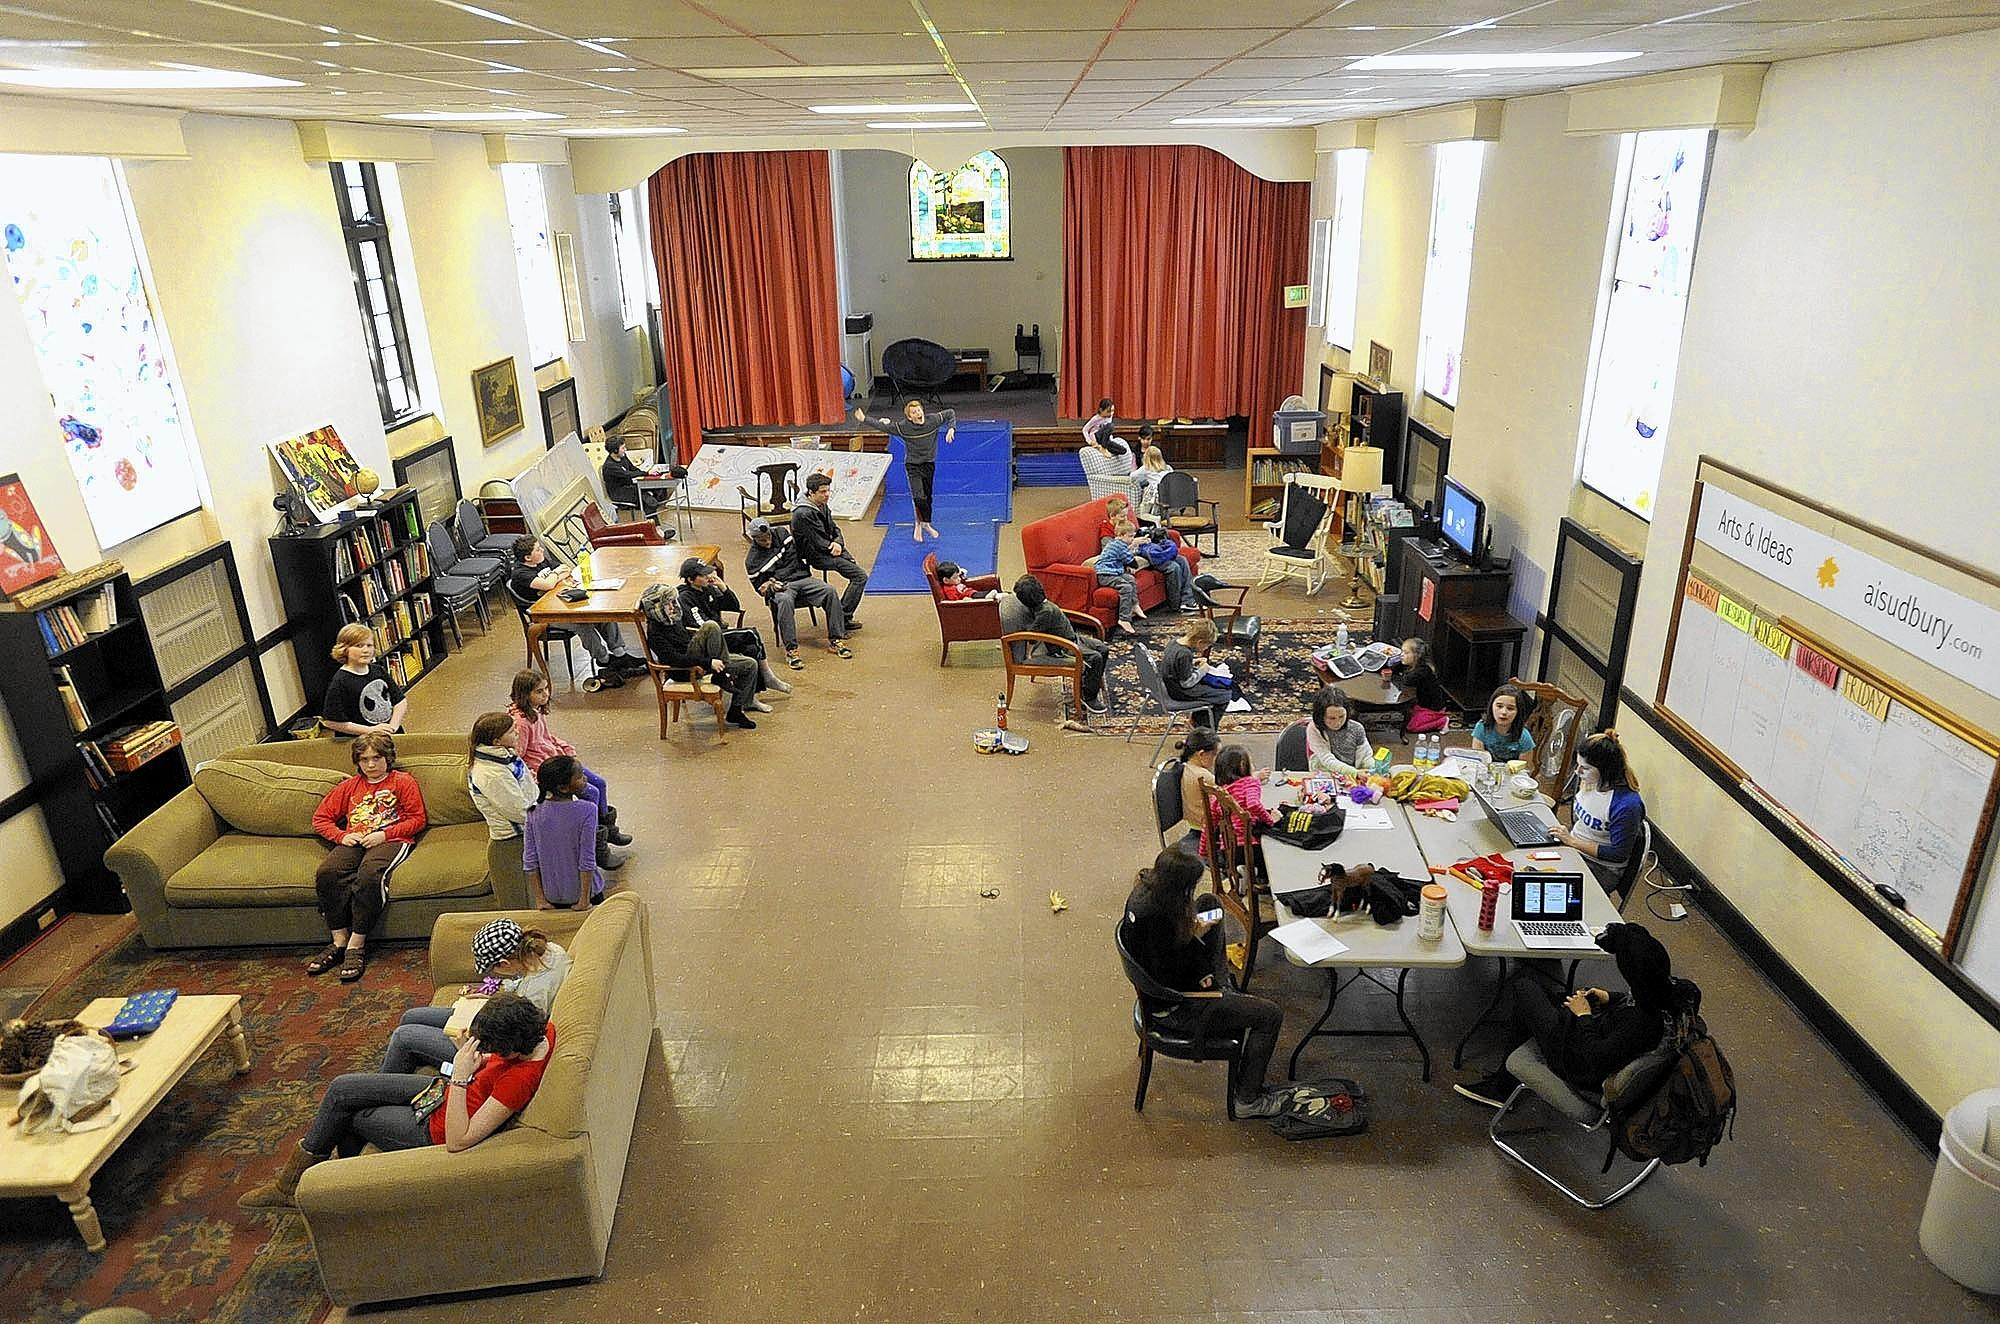 Arts and Ideas Sudbury School students gather in the school's Great Room on campus at the former St. John's Episcopal Church building in Mount Washington.